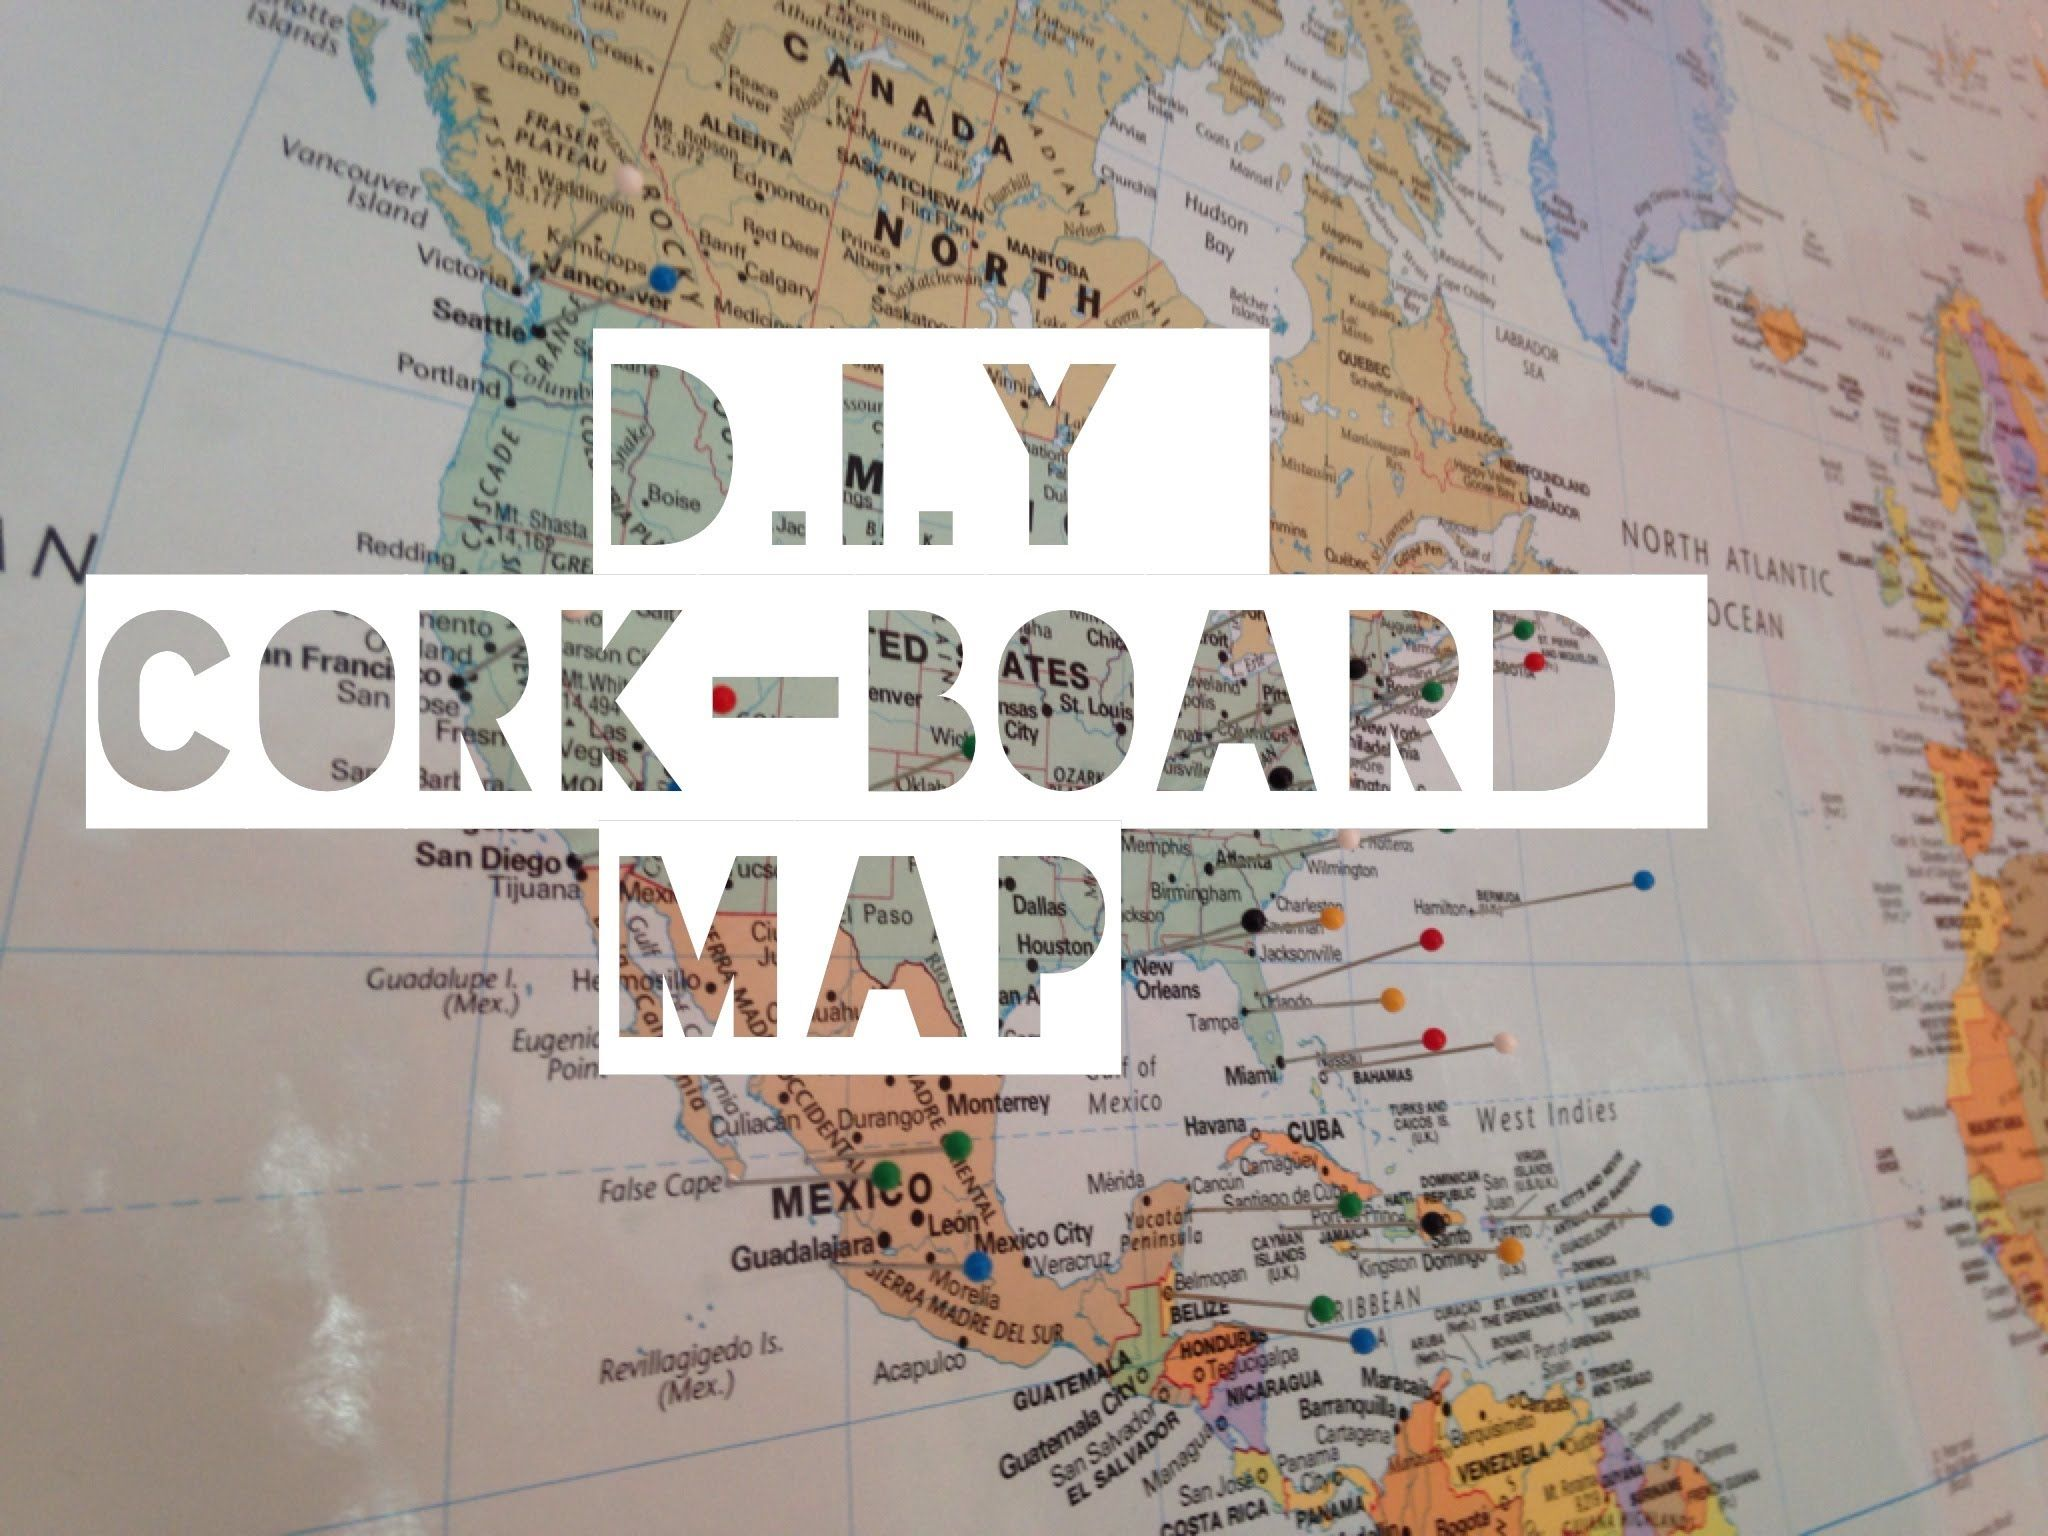 World map cities visited picture ideas references world map cities visited world map cities visited world map cities ive visited have you ever wanted to make a corkboard map where you could pin all the gumiabroncs Images